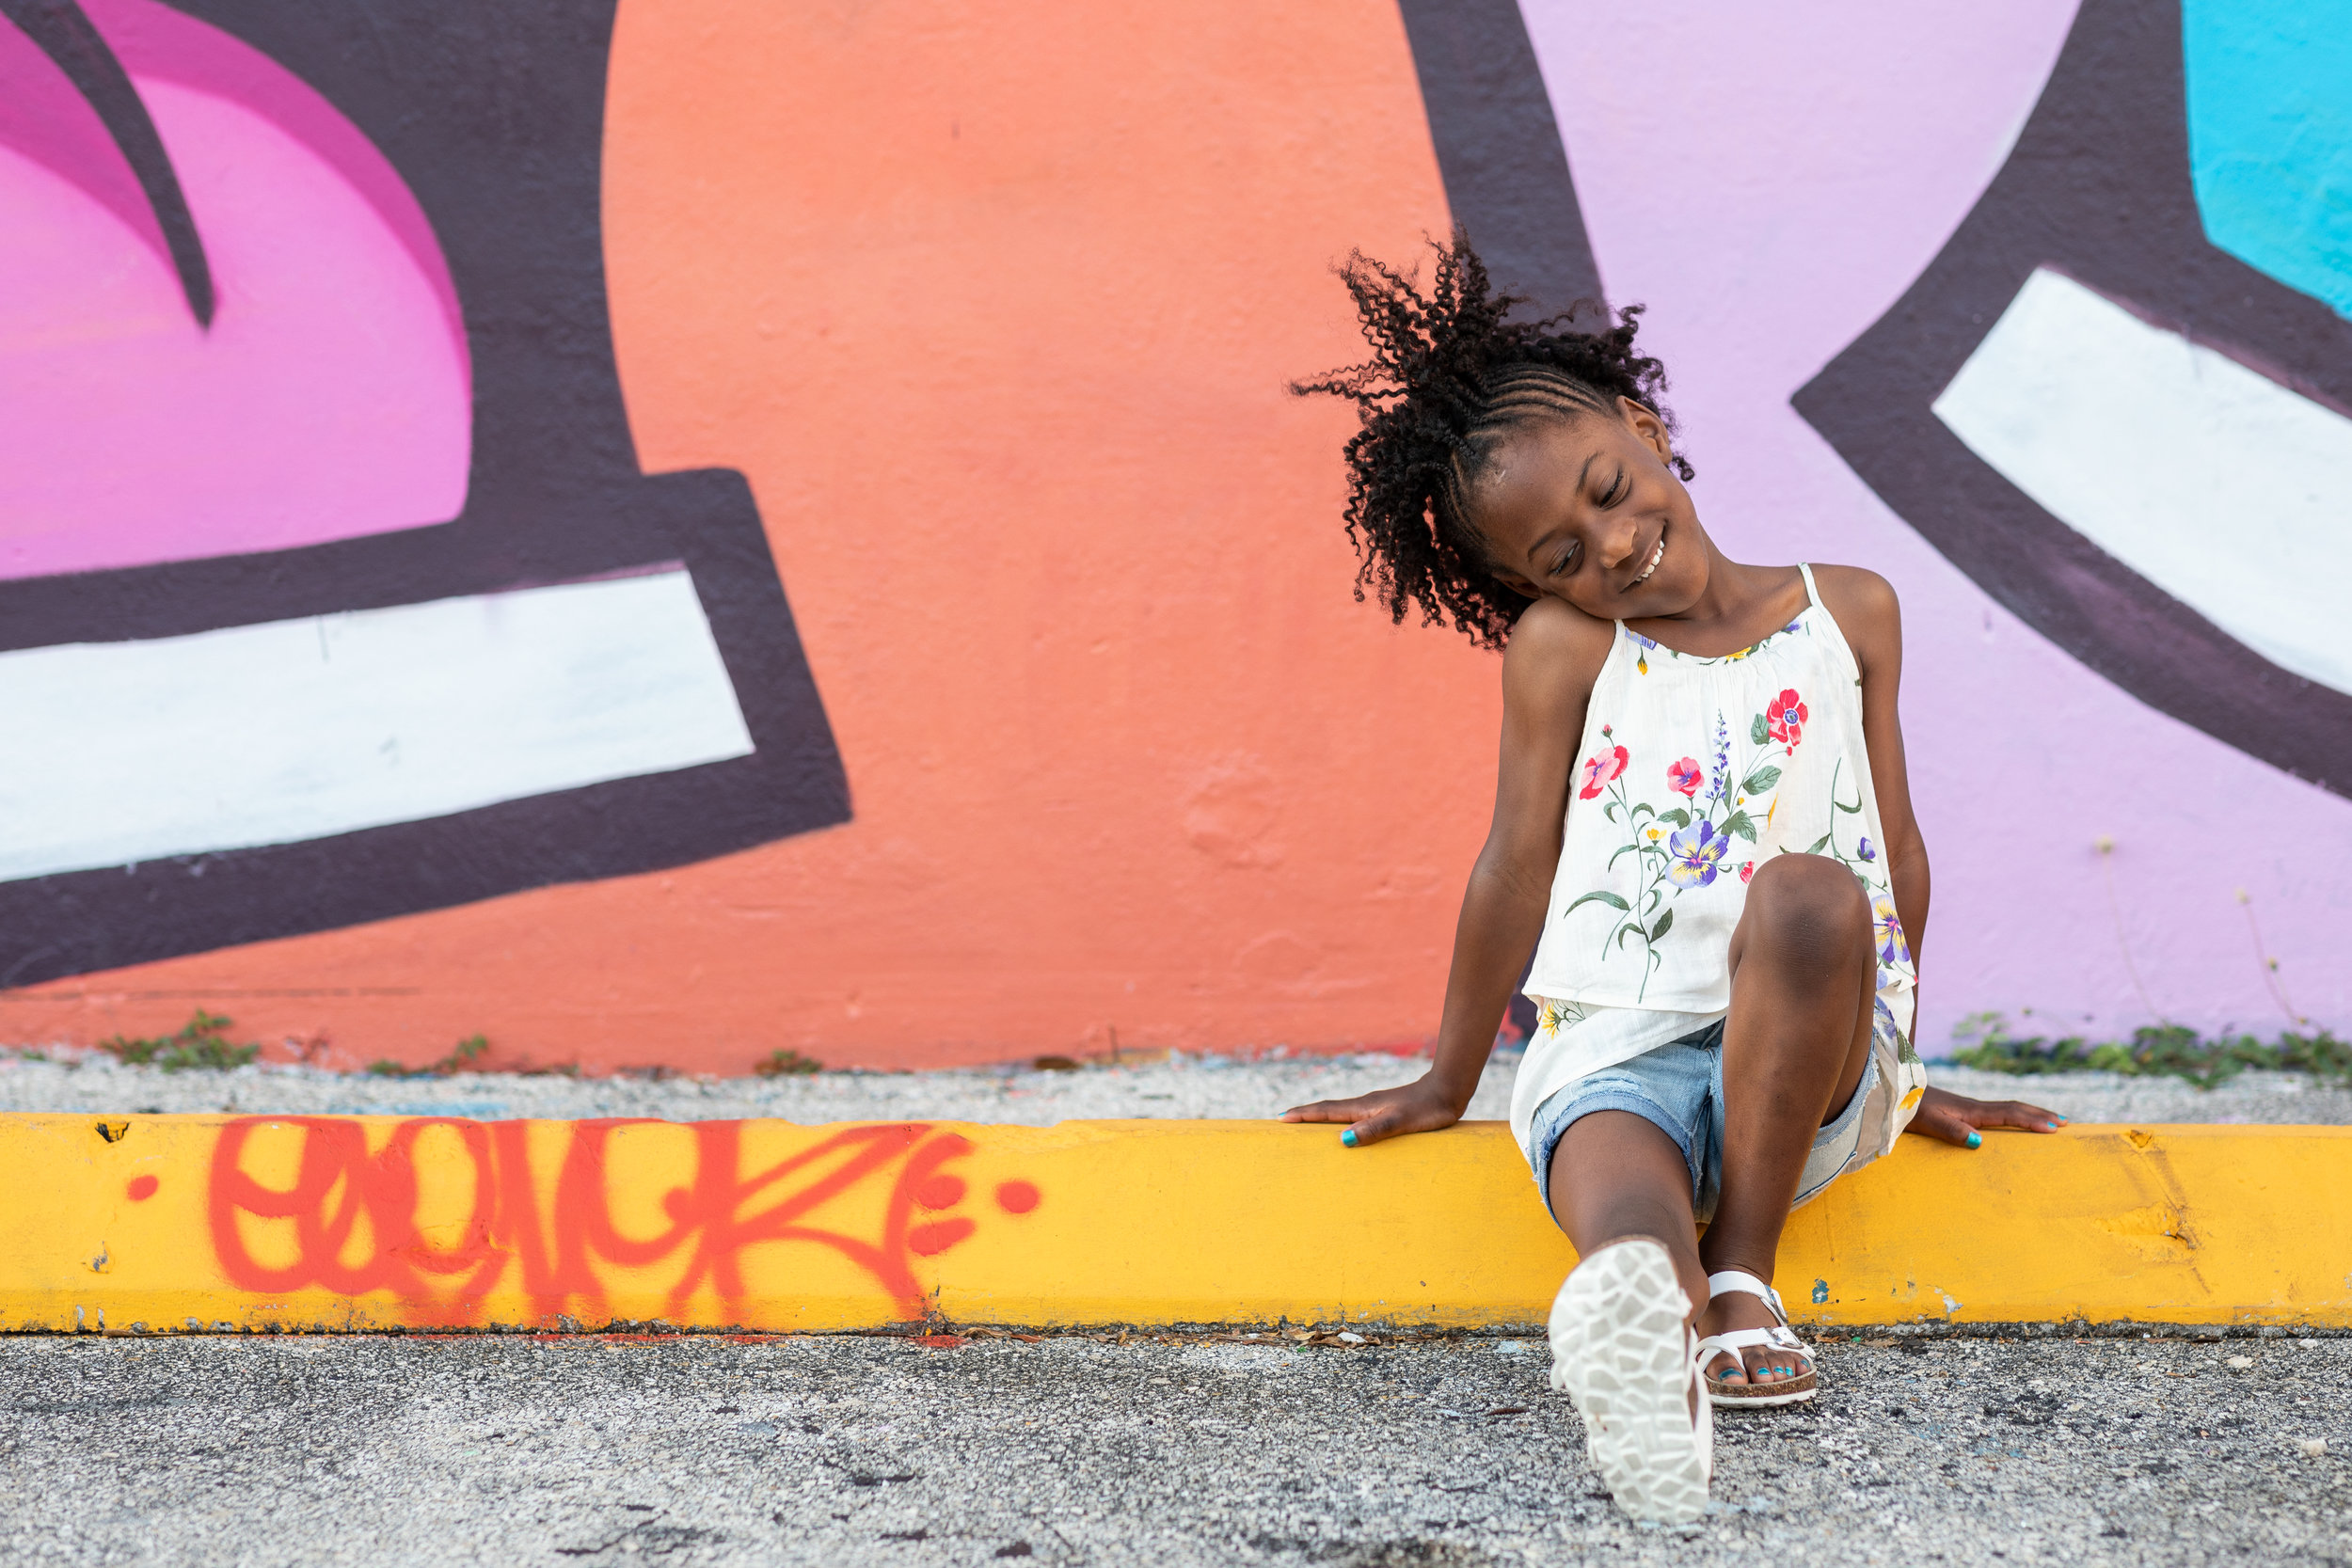 Wynwwod-Walls-Miami-Art-District-Child-Girl-Spring-Session-Miami-Family-Photographer_7673.jpg